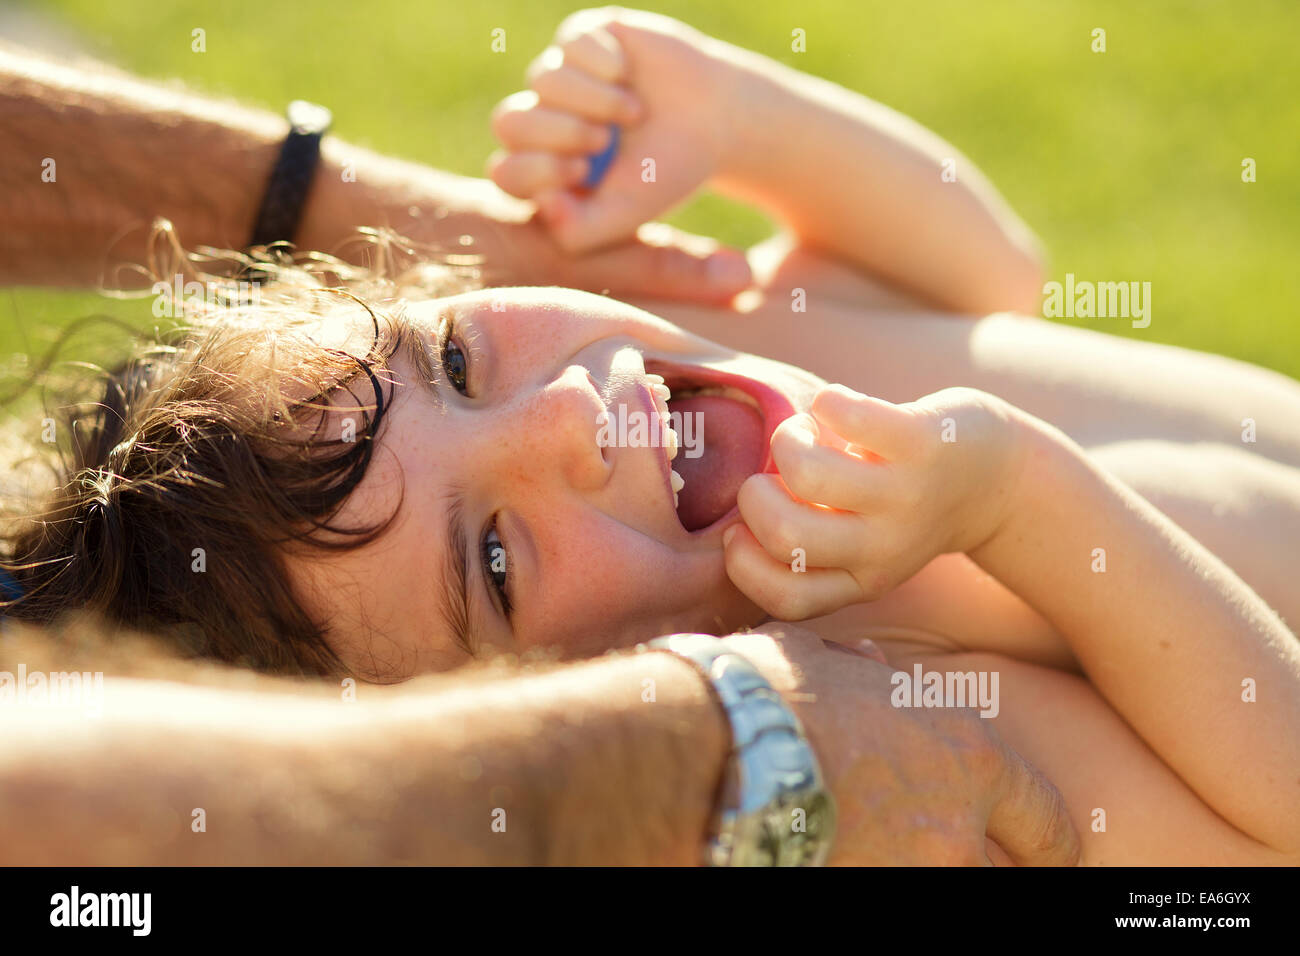 Girl being tickled and laughing - Stock Image